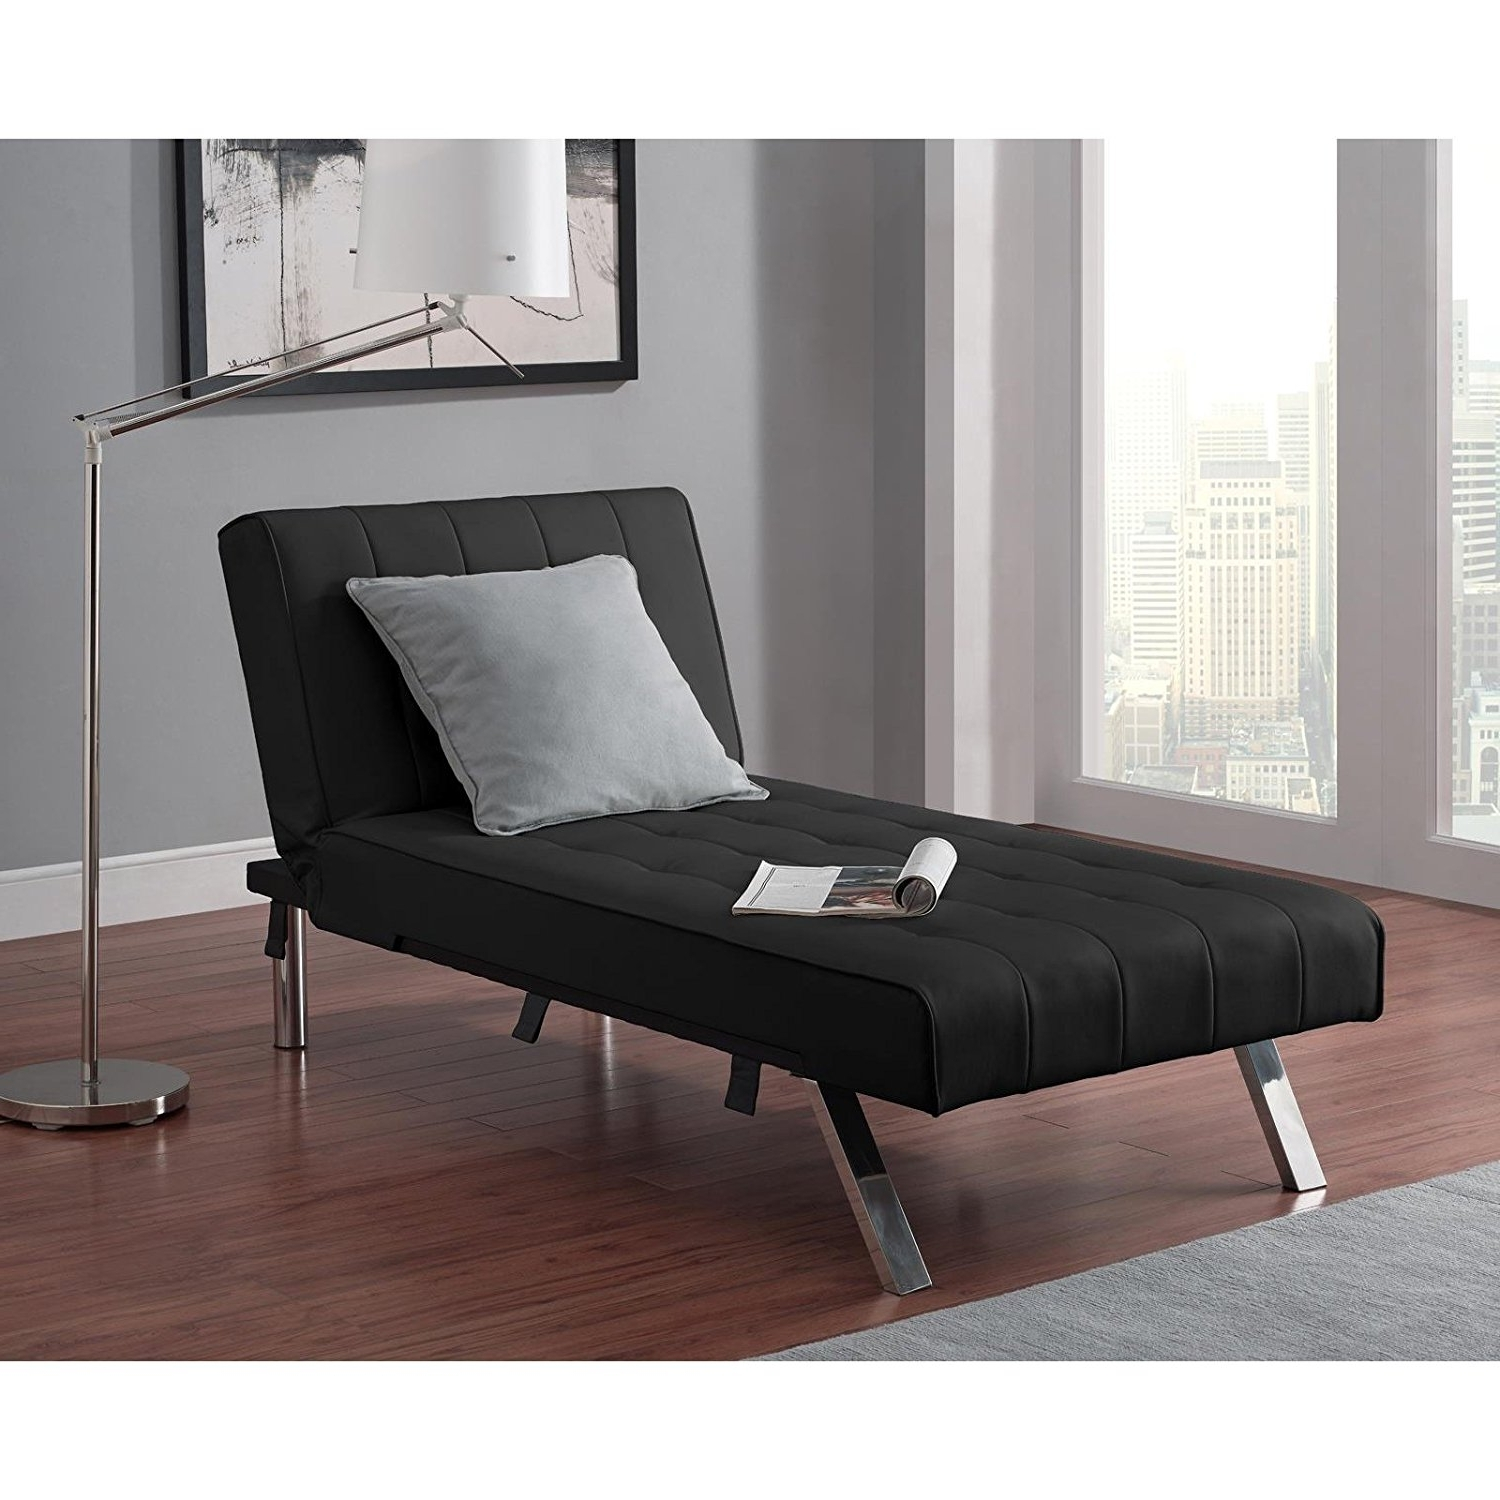 Futon Chaises Throughout Most Up To Date Amazon: Emily Futon With Chaise Lounger Super Bonus Set Black (View 6 of 15)